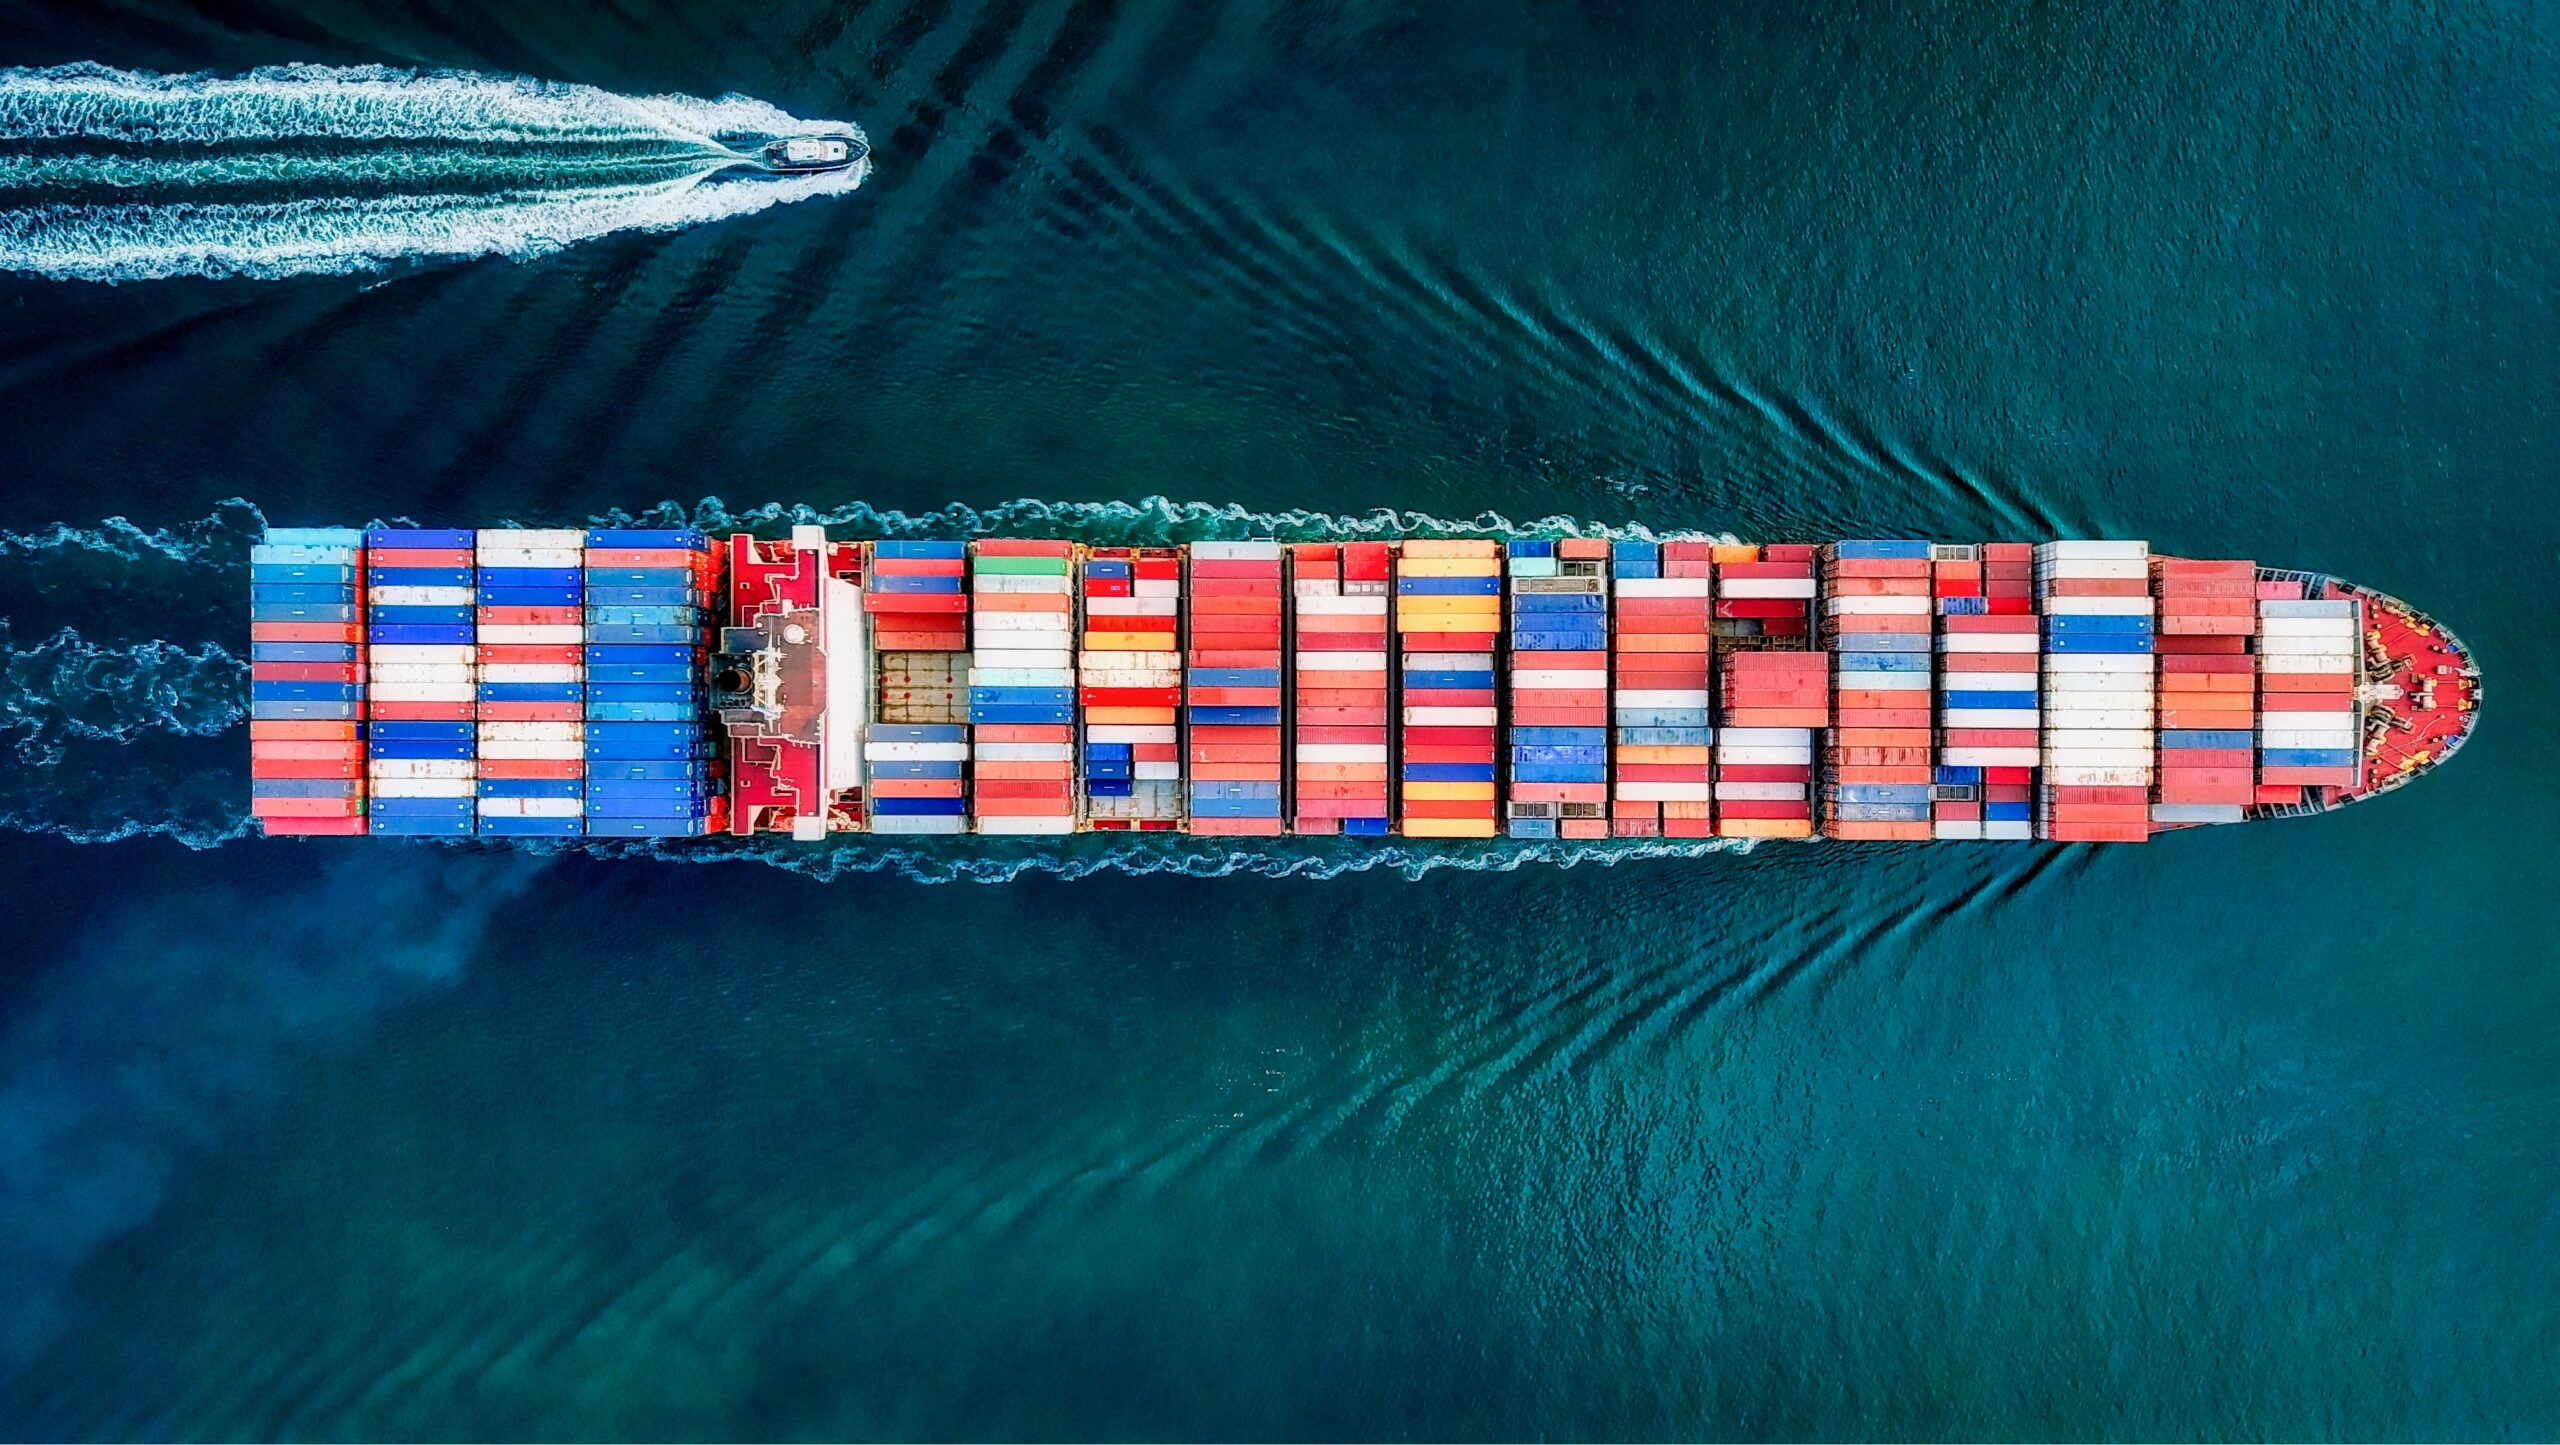 Maritime sector's commitment to act on climate change